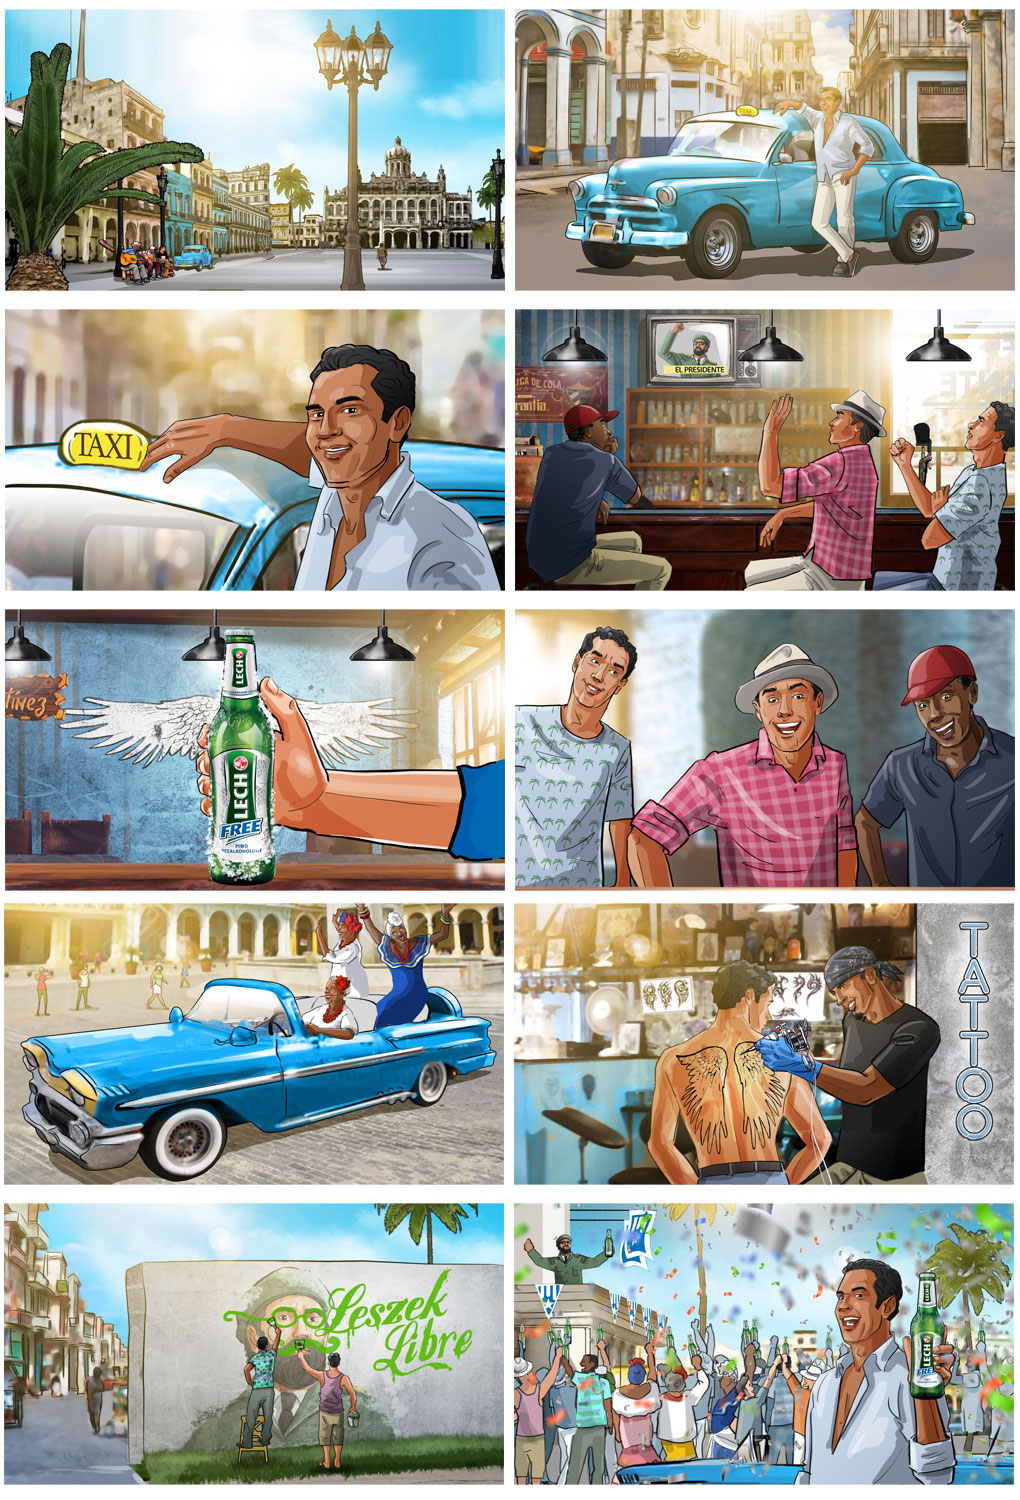 cuba beer storyboard dance happy freedom comedy storyboard advertising